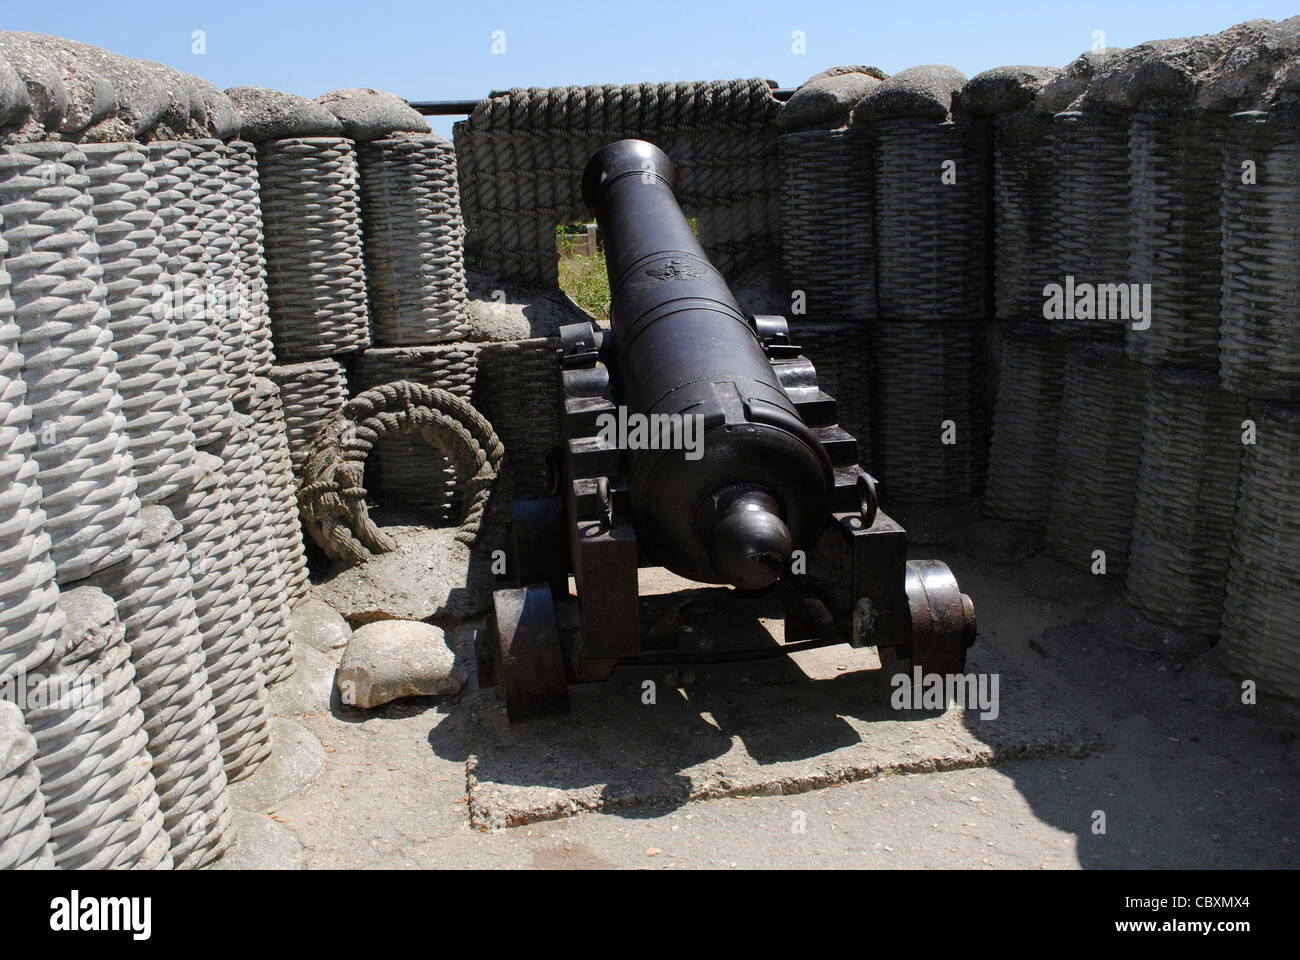 Cannon used to defend the city during the siege of Sevastopol (1854-1856). Crimean War (1853-1856). Sevastopol. - Stock Image